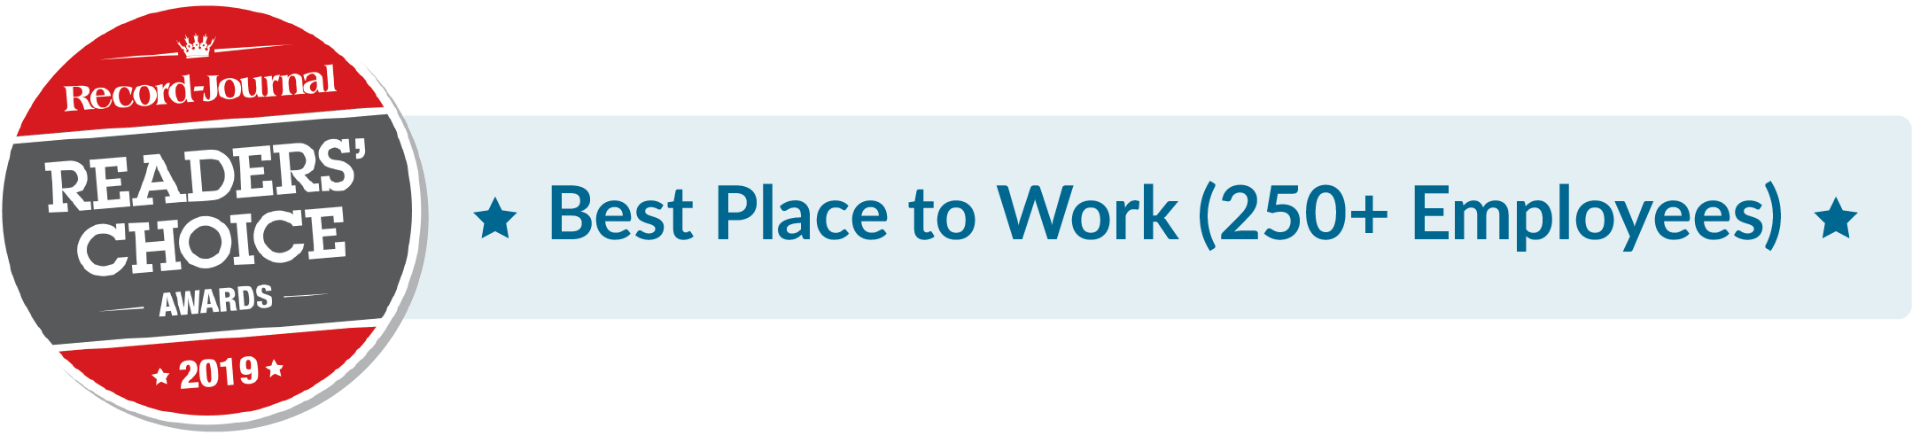 Record Journal Readers' Choice 2019 - Best Places to Work (250+ Employees)